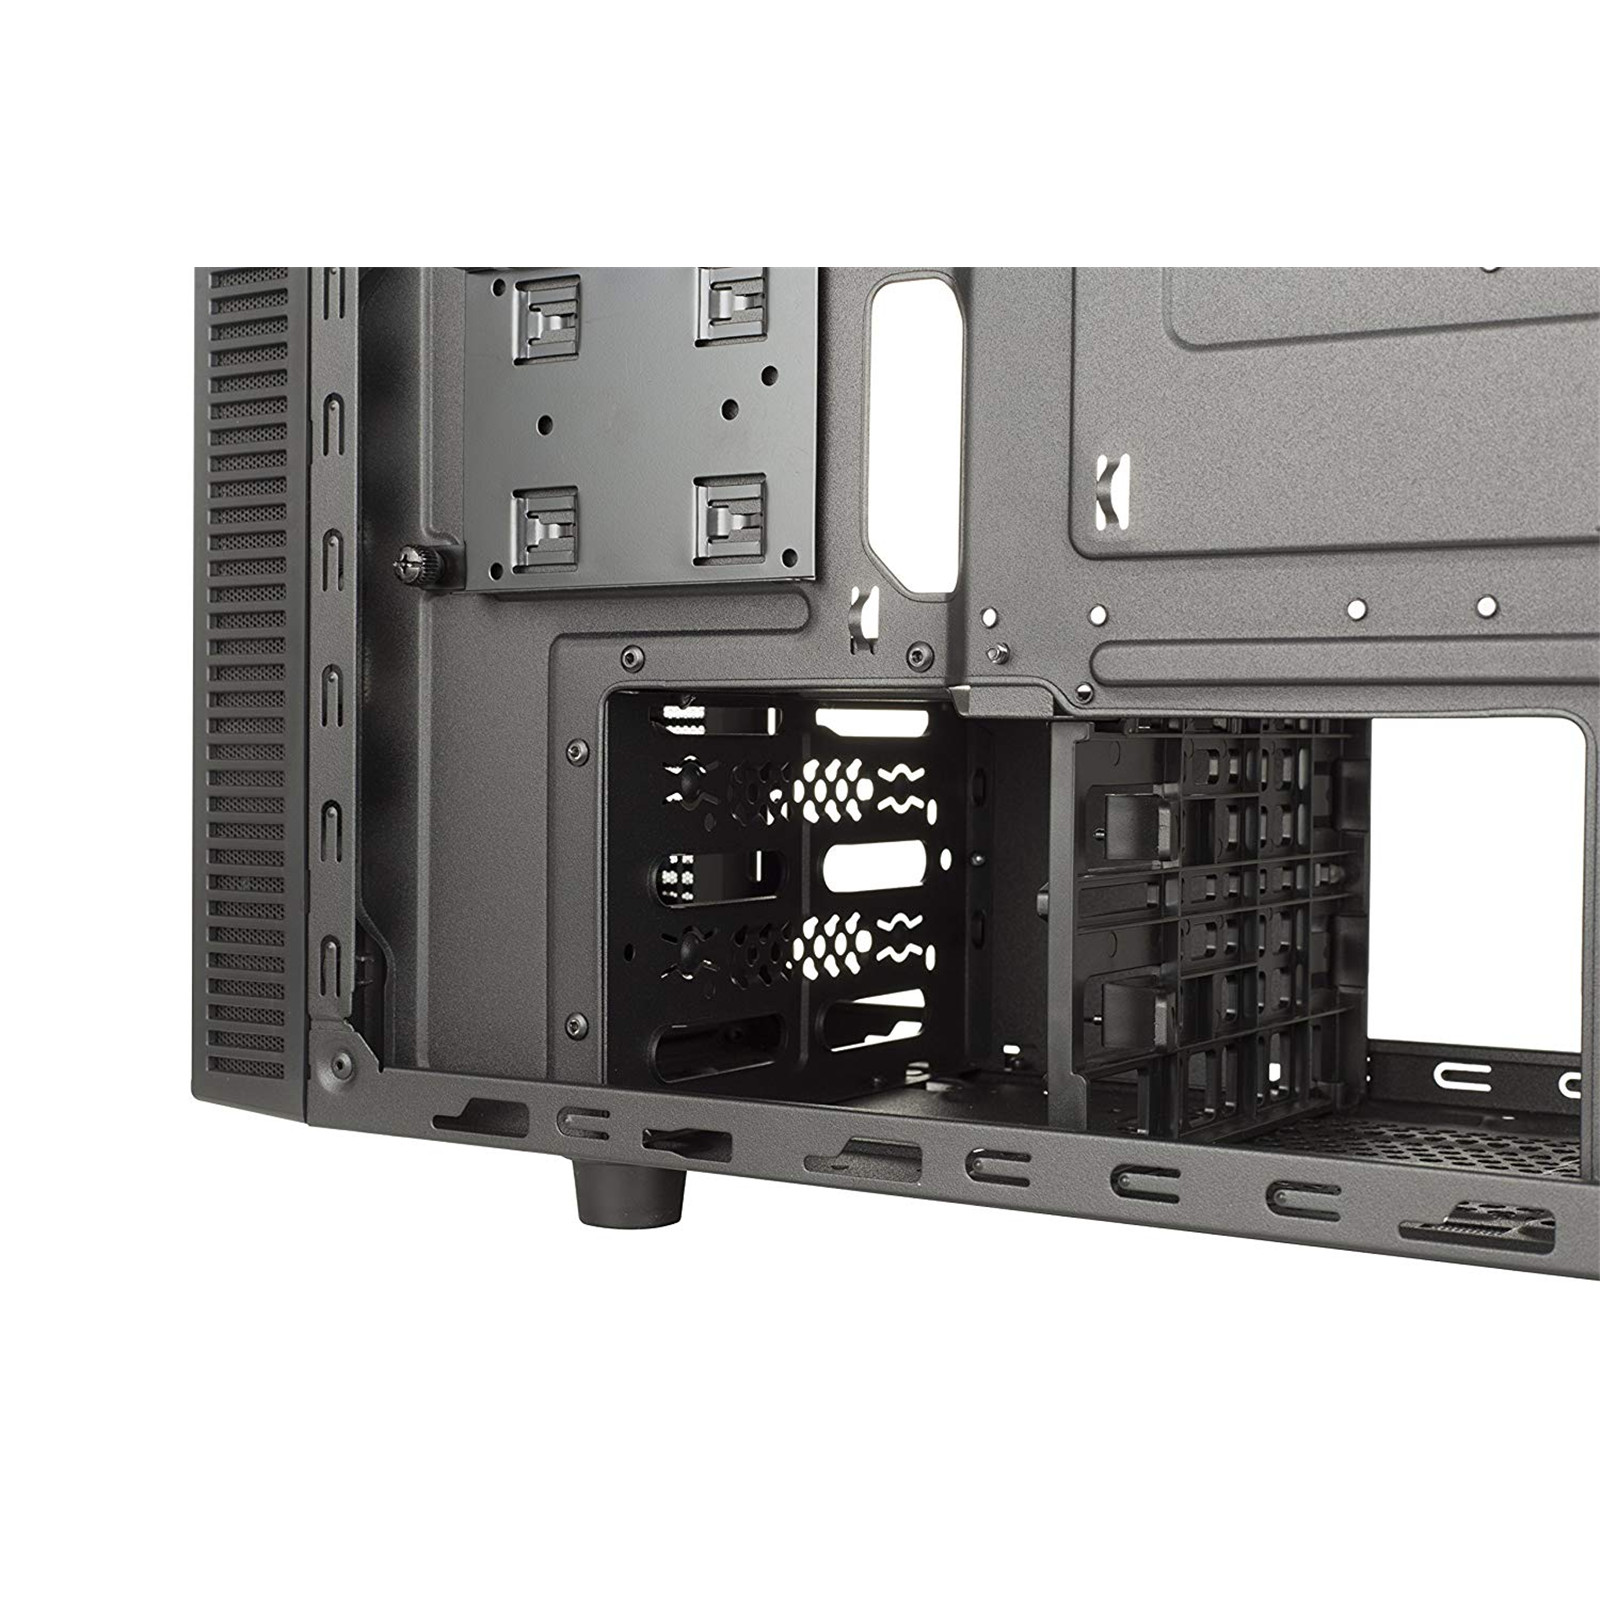 Cooler Master MasterBox E500L Mid Tower ATX Case Blue Metal Side Panel